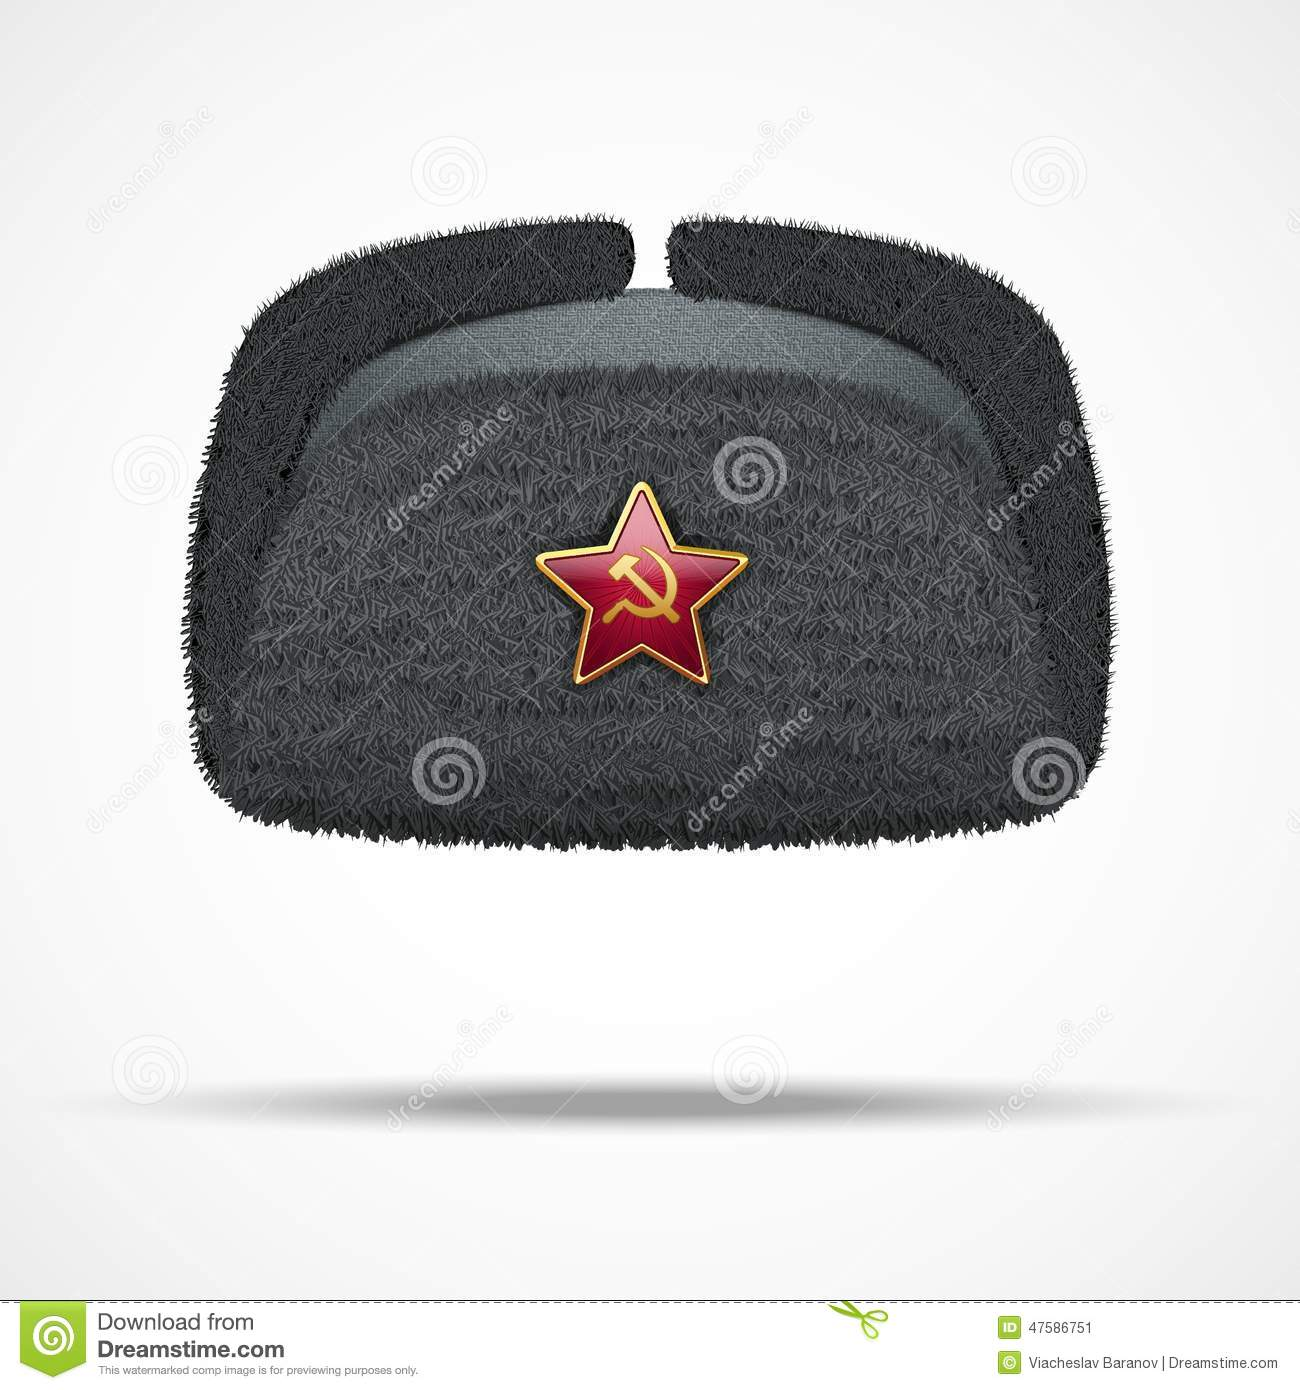 688546a294c Russian black fur winter hat ushanka with red star. Vector illustration  isolated on white background.